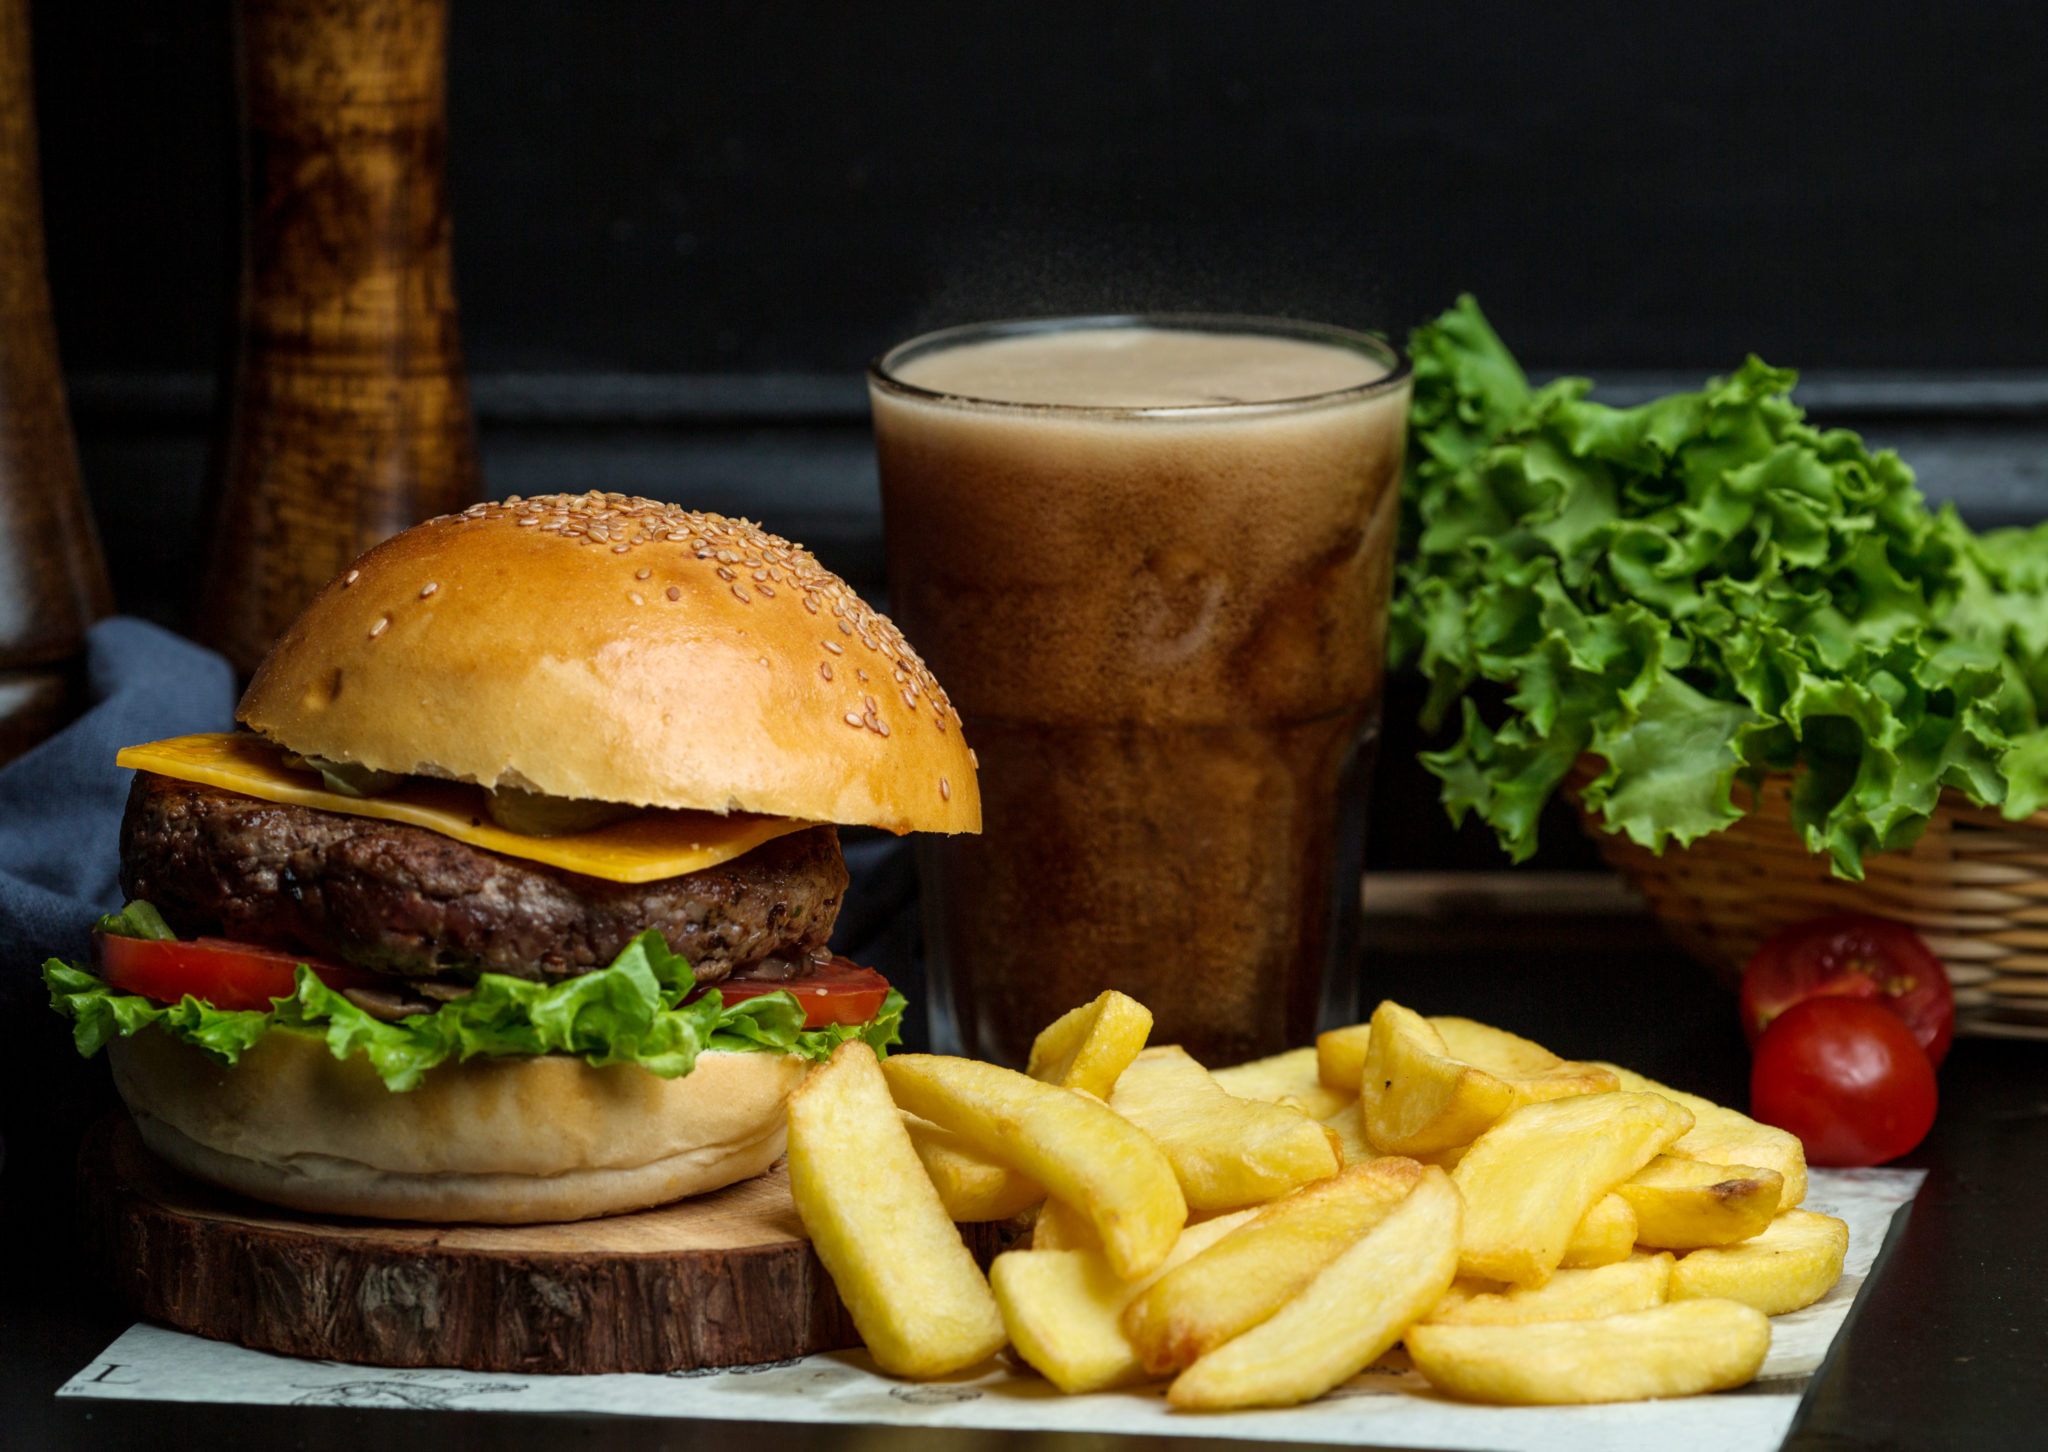 beef burger with cheese, lettuce, tomato served with fries and coke